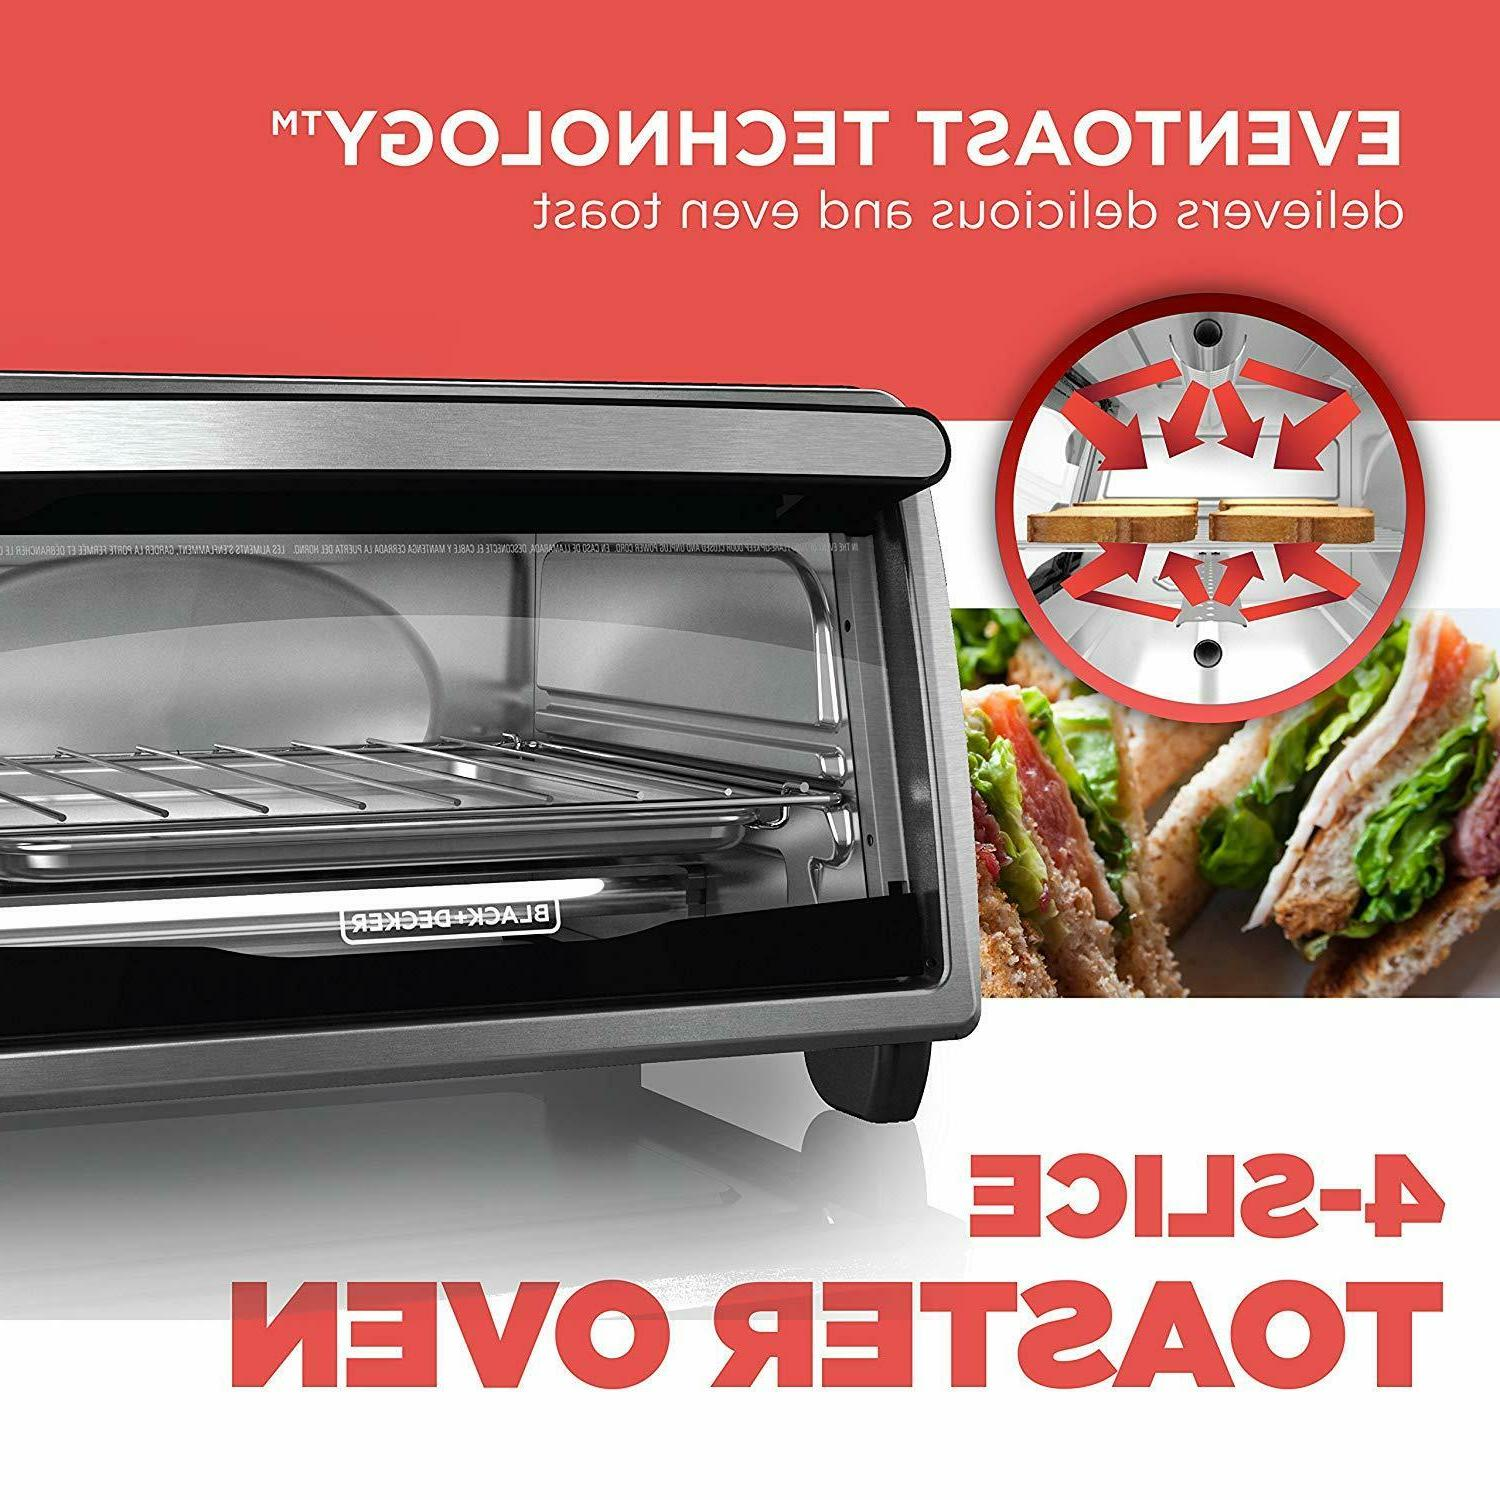 DECKER Toaster Oven Stainless Steel Black